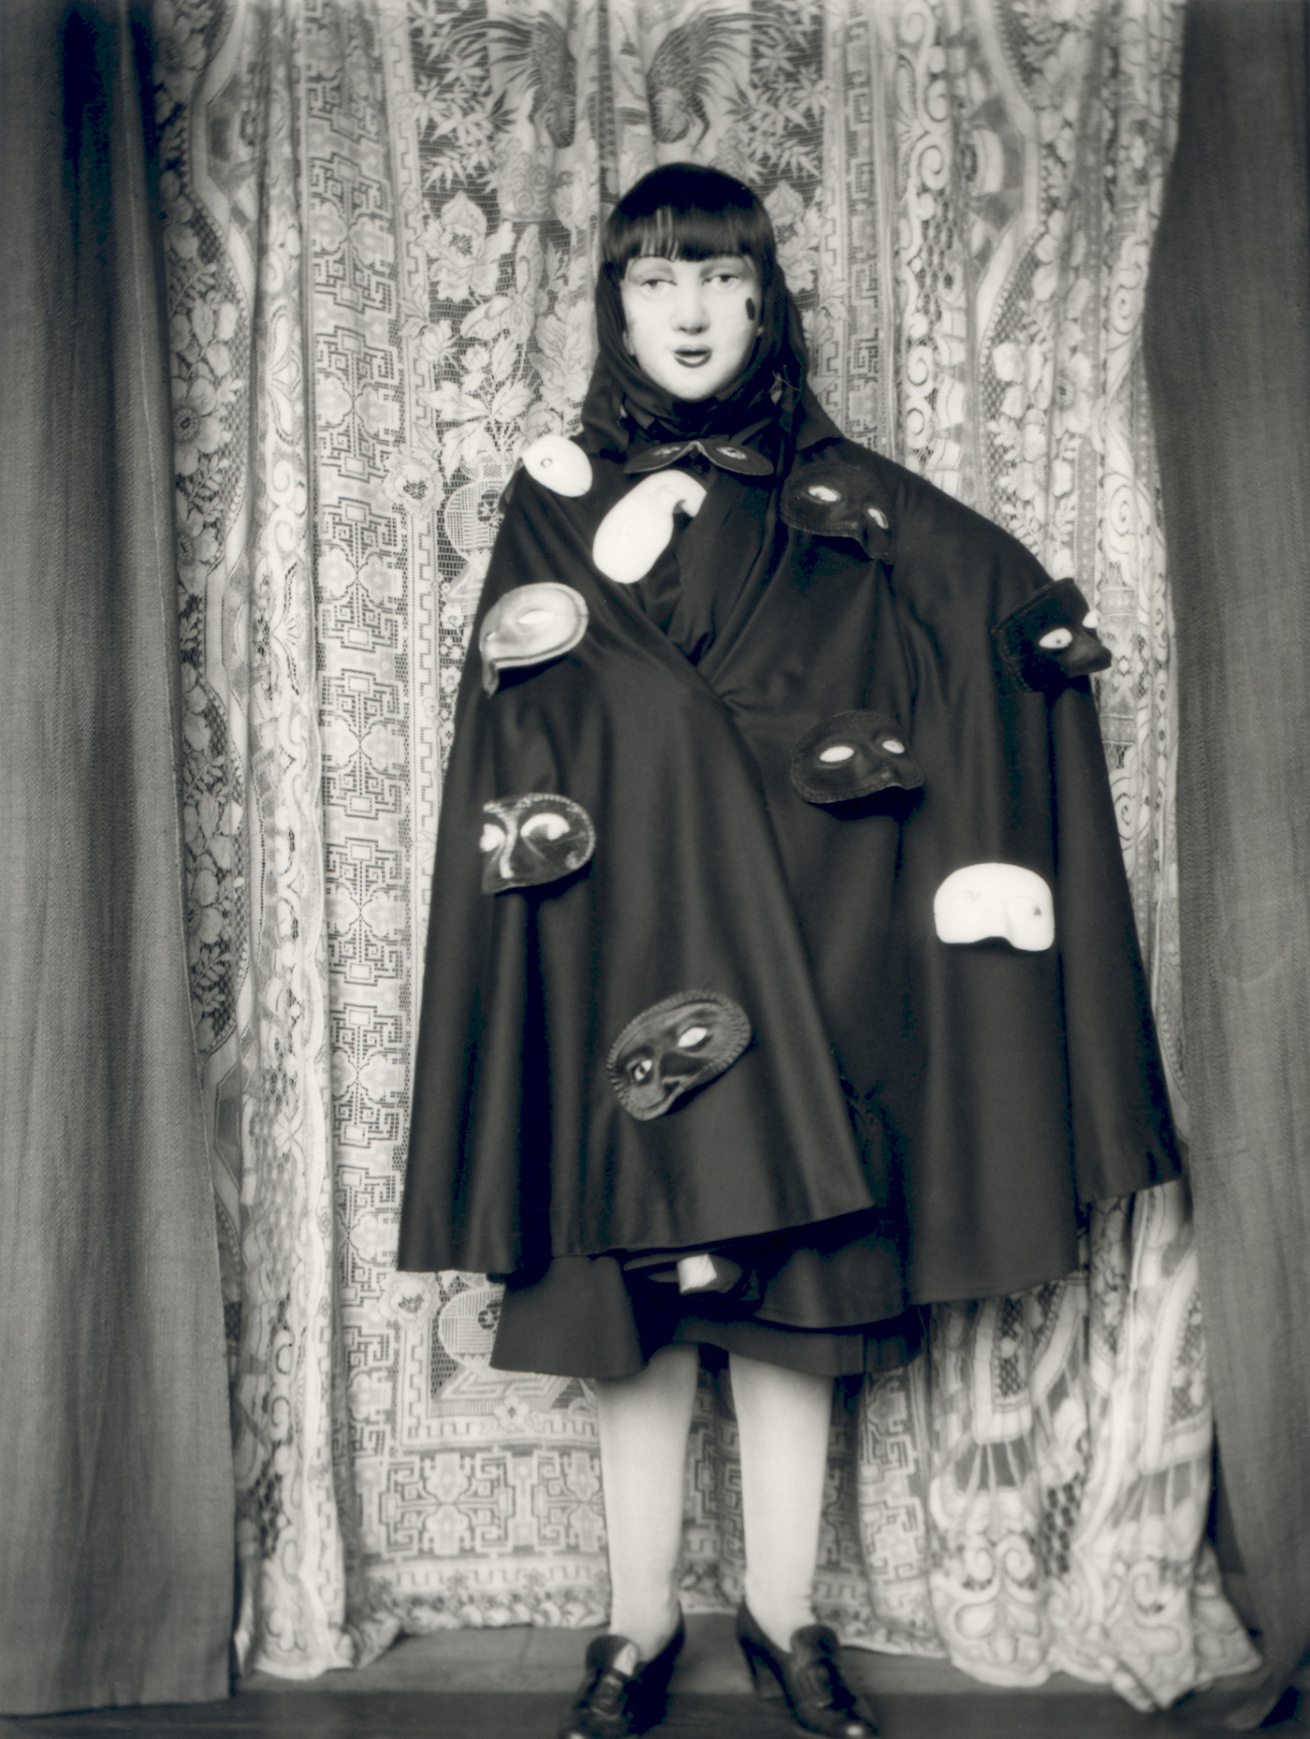 Fotó: Claude Cahun: Self-portrait (full length masked figure in cloak with masks), 1928 © Jersey Heritage Collections